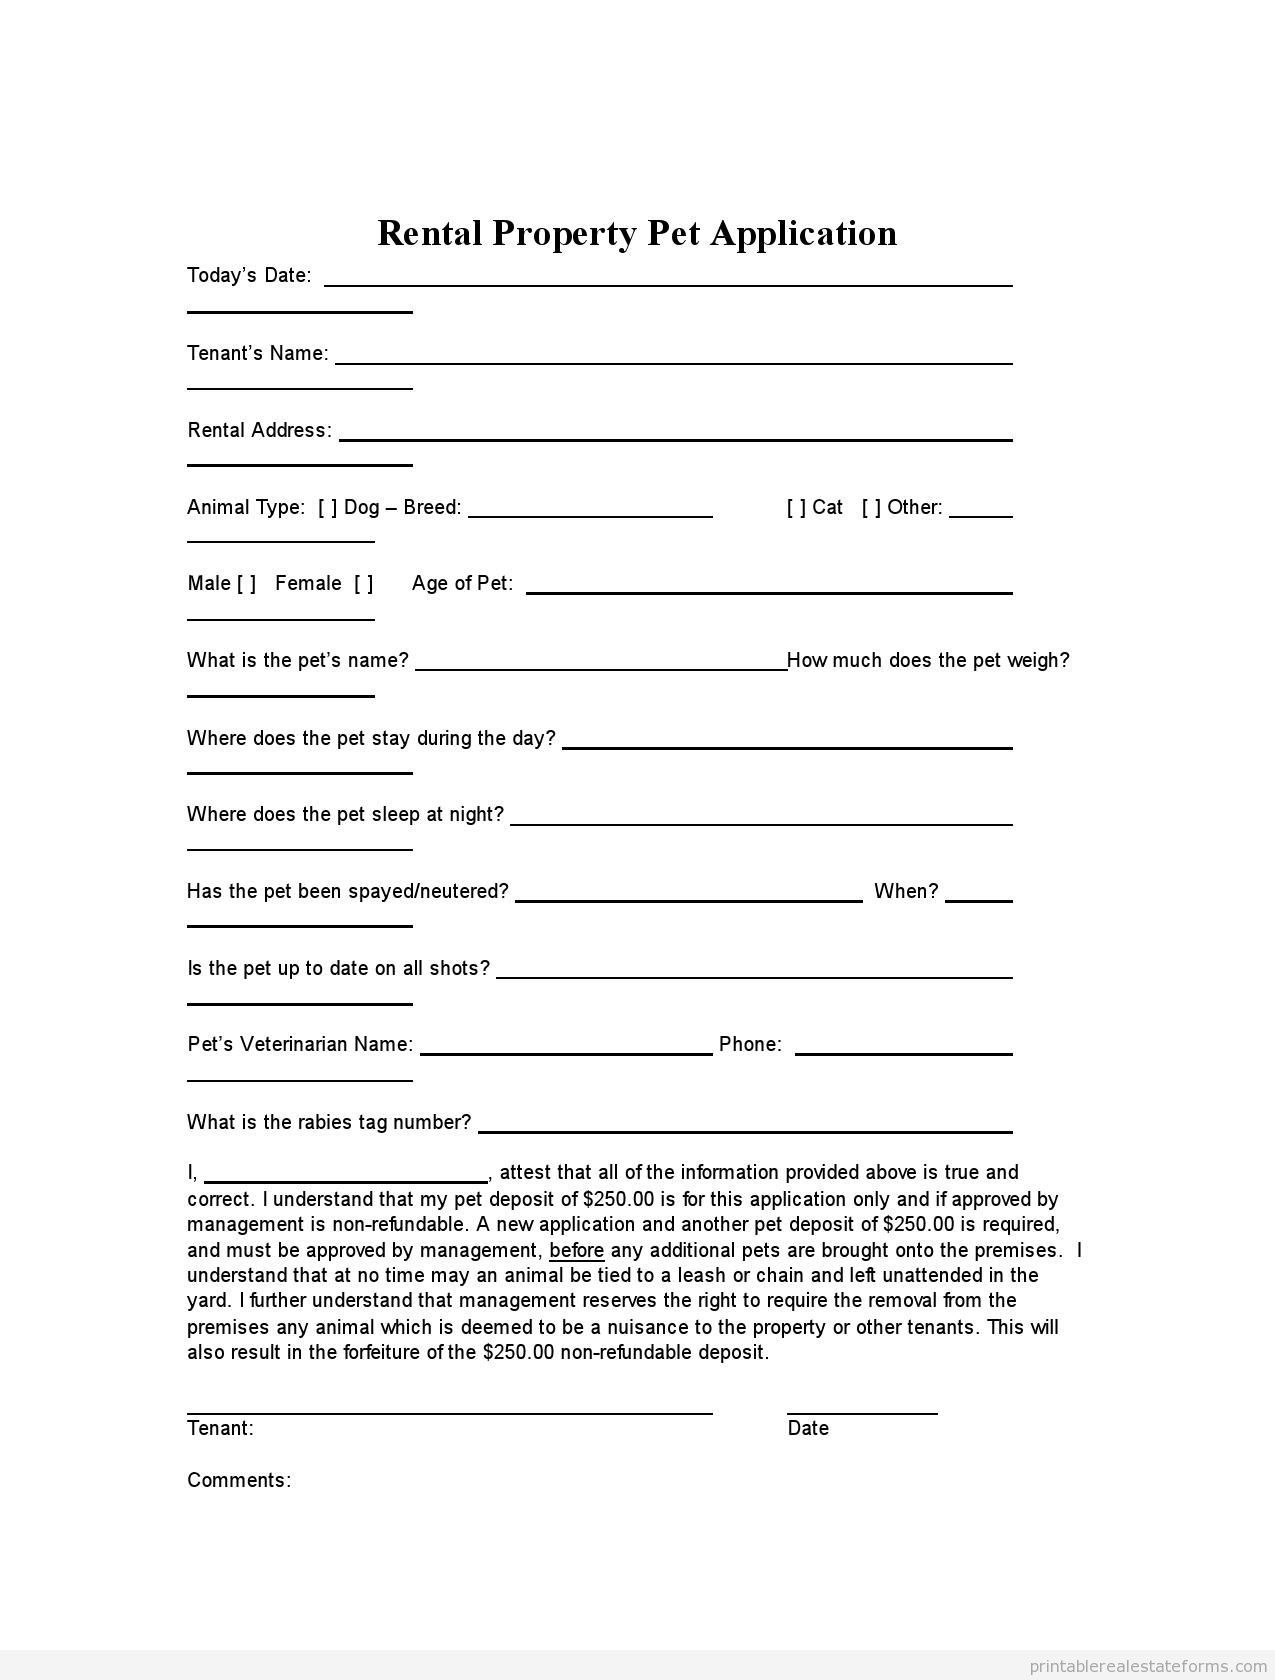 printable rental property pet application template sample get high quality printable property turnover sheet form editable sample blank word template ready to fill out print and sign more here